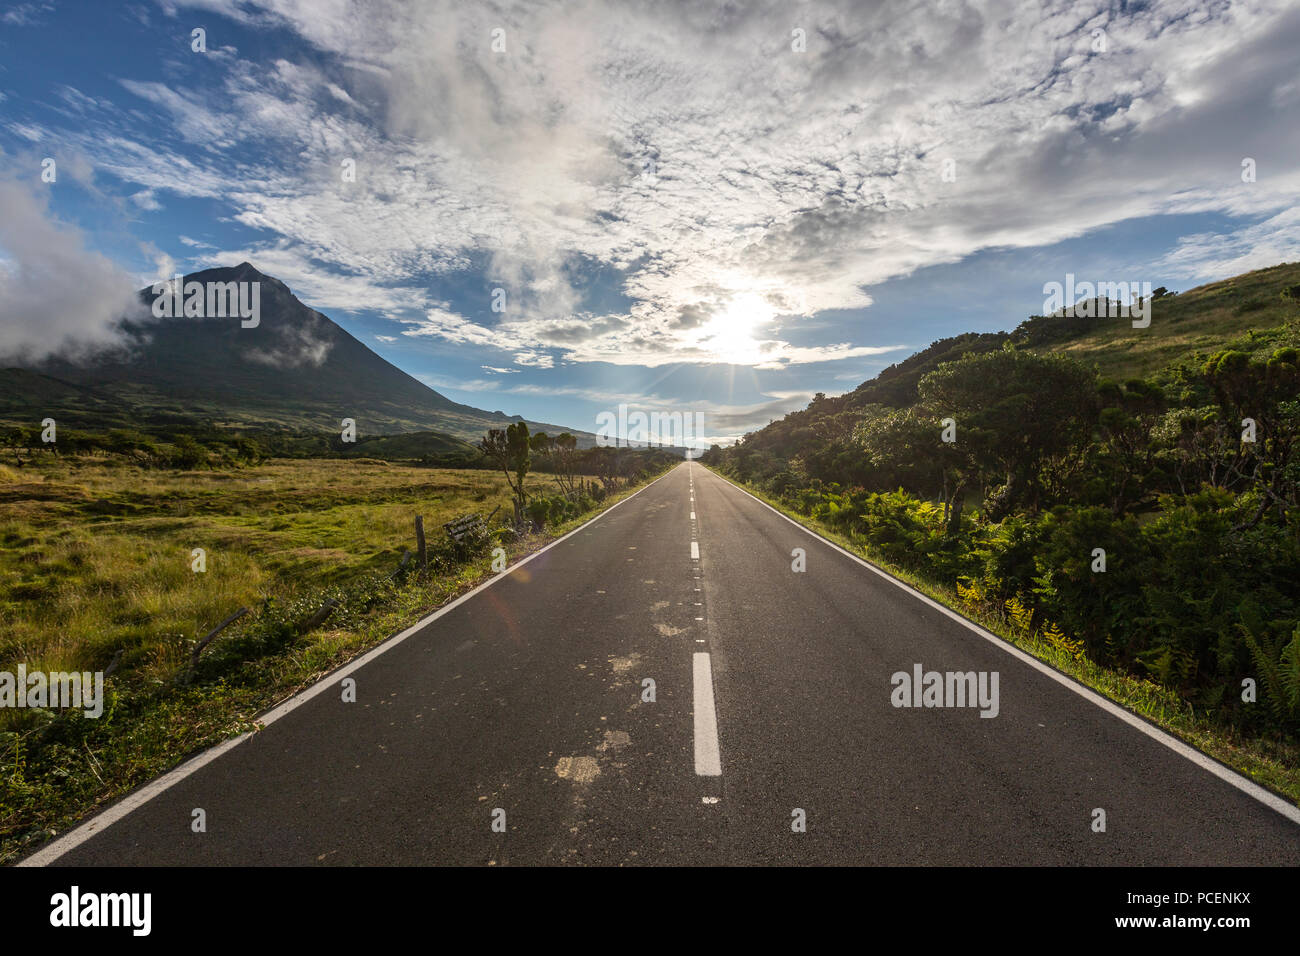 Straight EN3 longitudinal road northeast of Mount Pico and the silhouette of the Mount Pico along , Pico island, Azores, Portugal - Stock Image